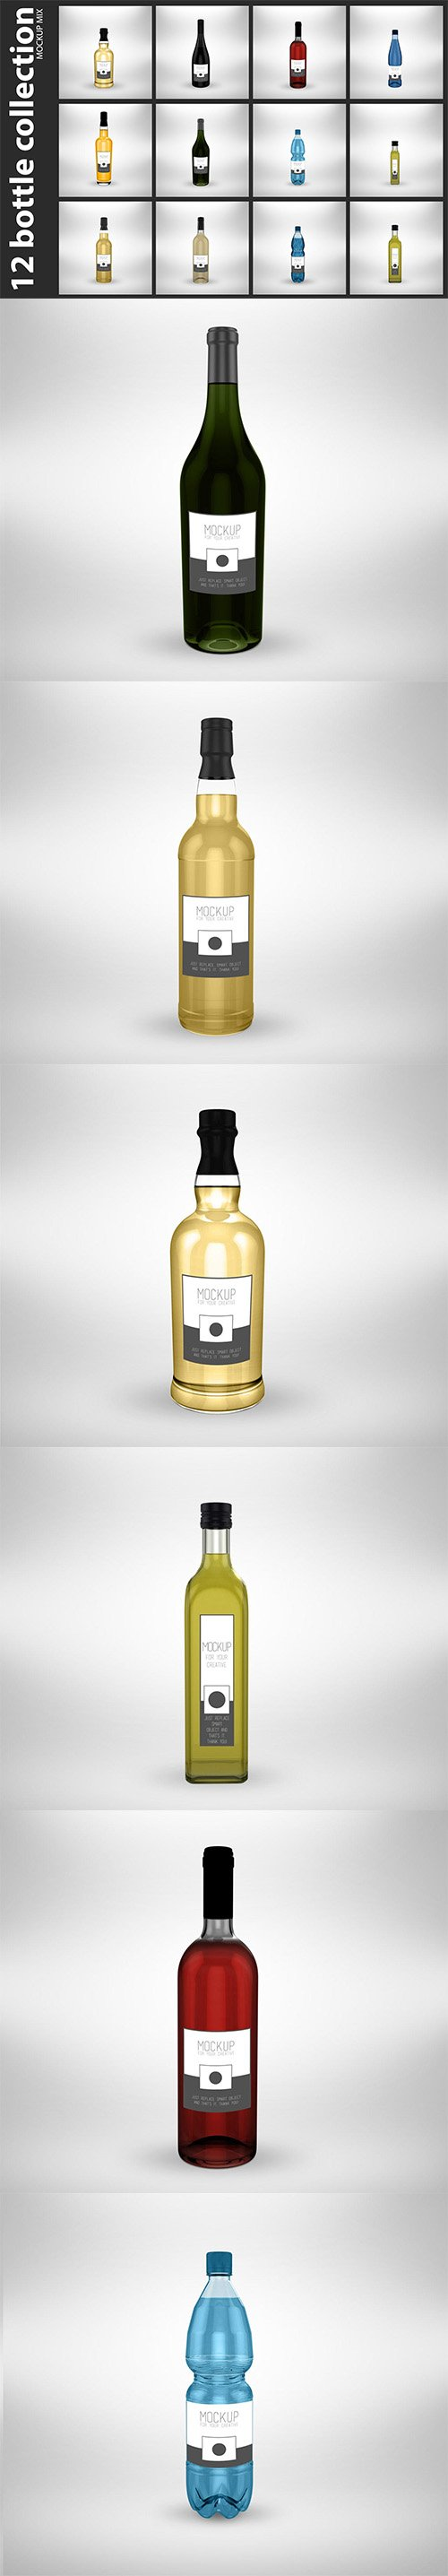 12 Bottle Collection PSD Mock Up